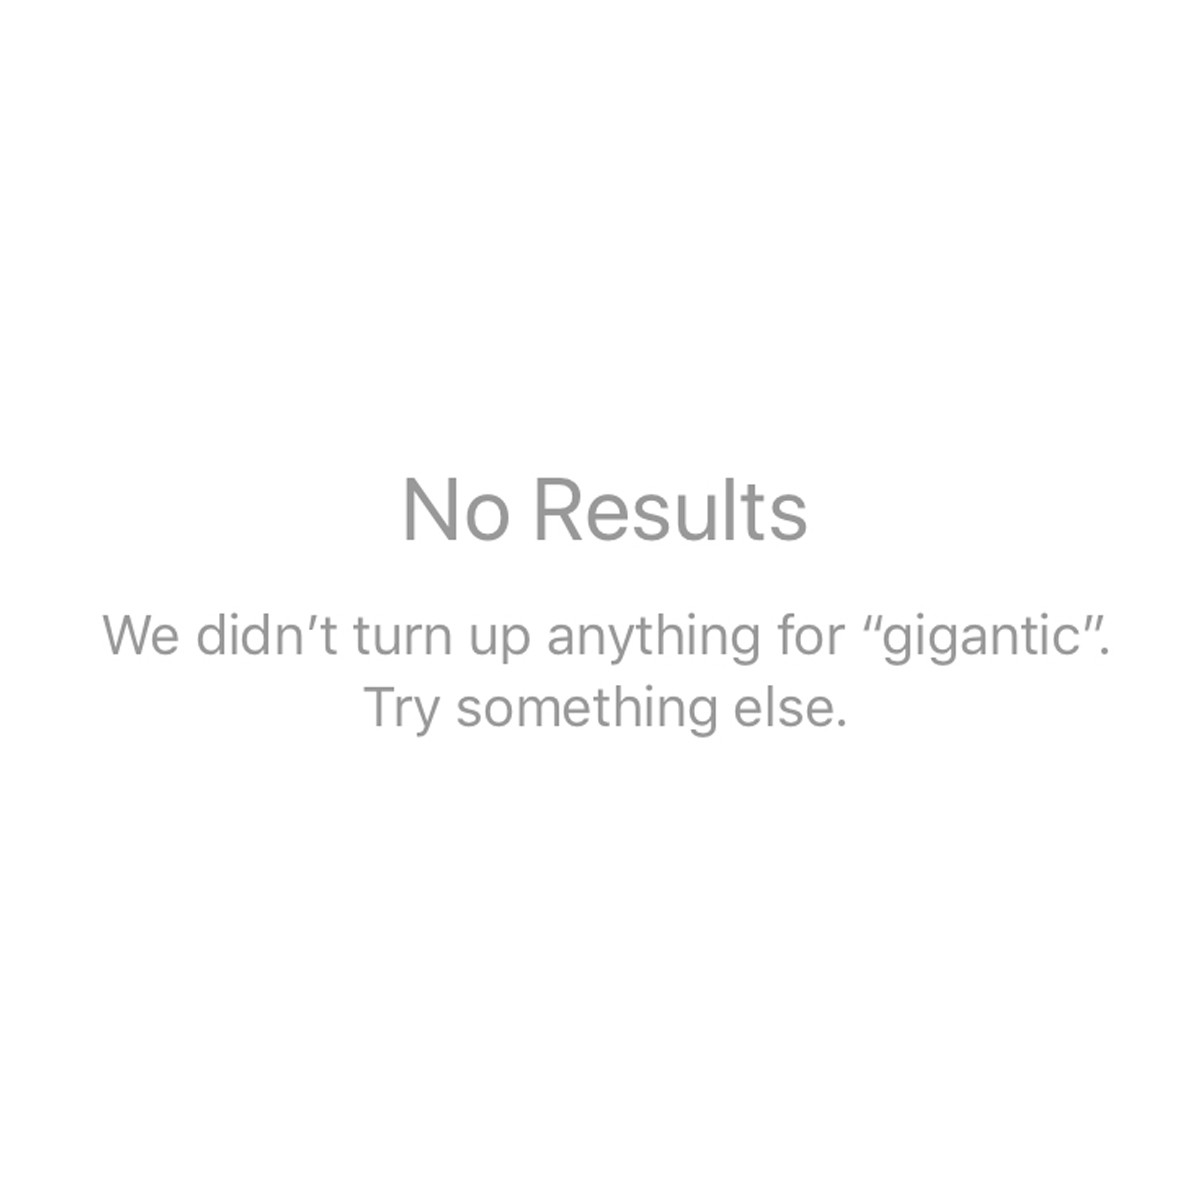 10.10.17: Gigantic (No Results)